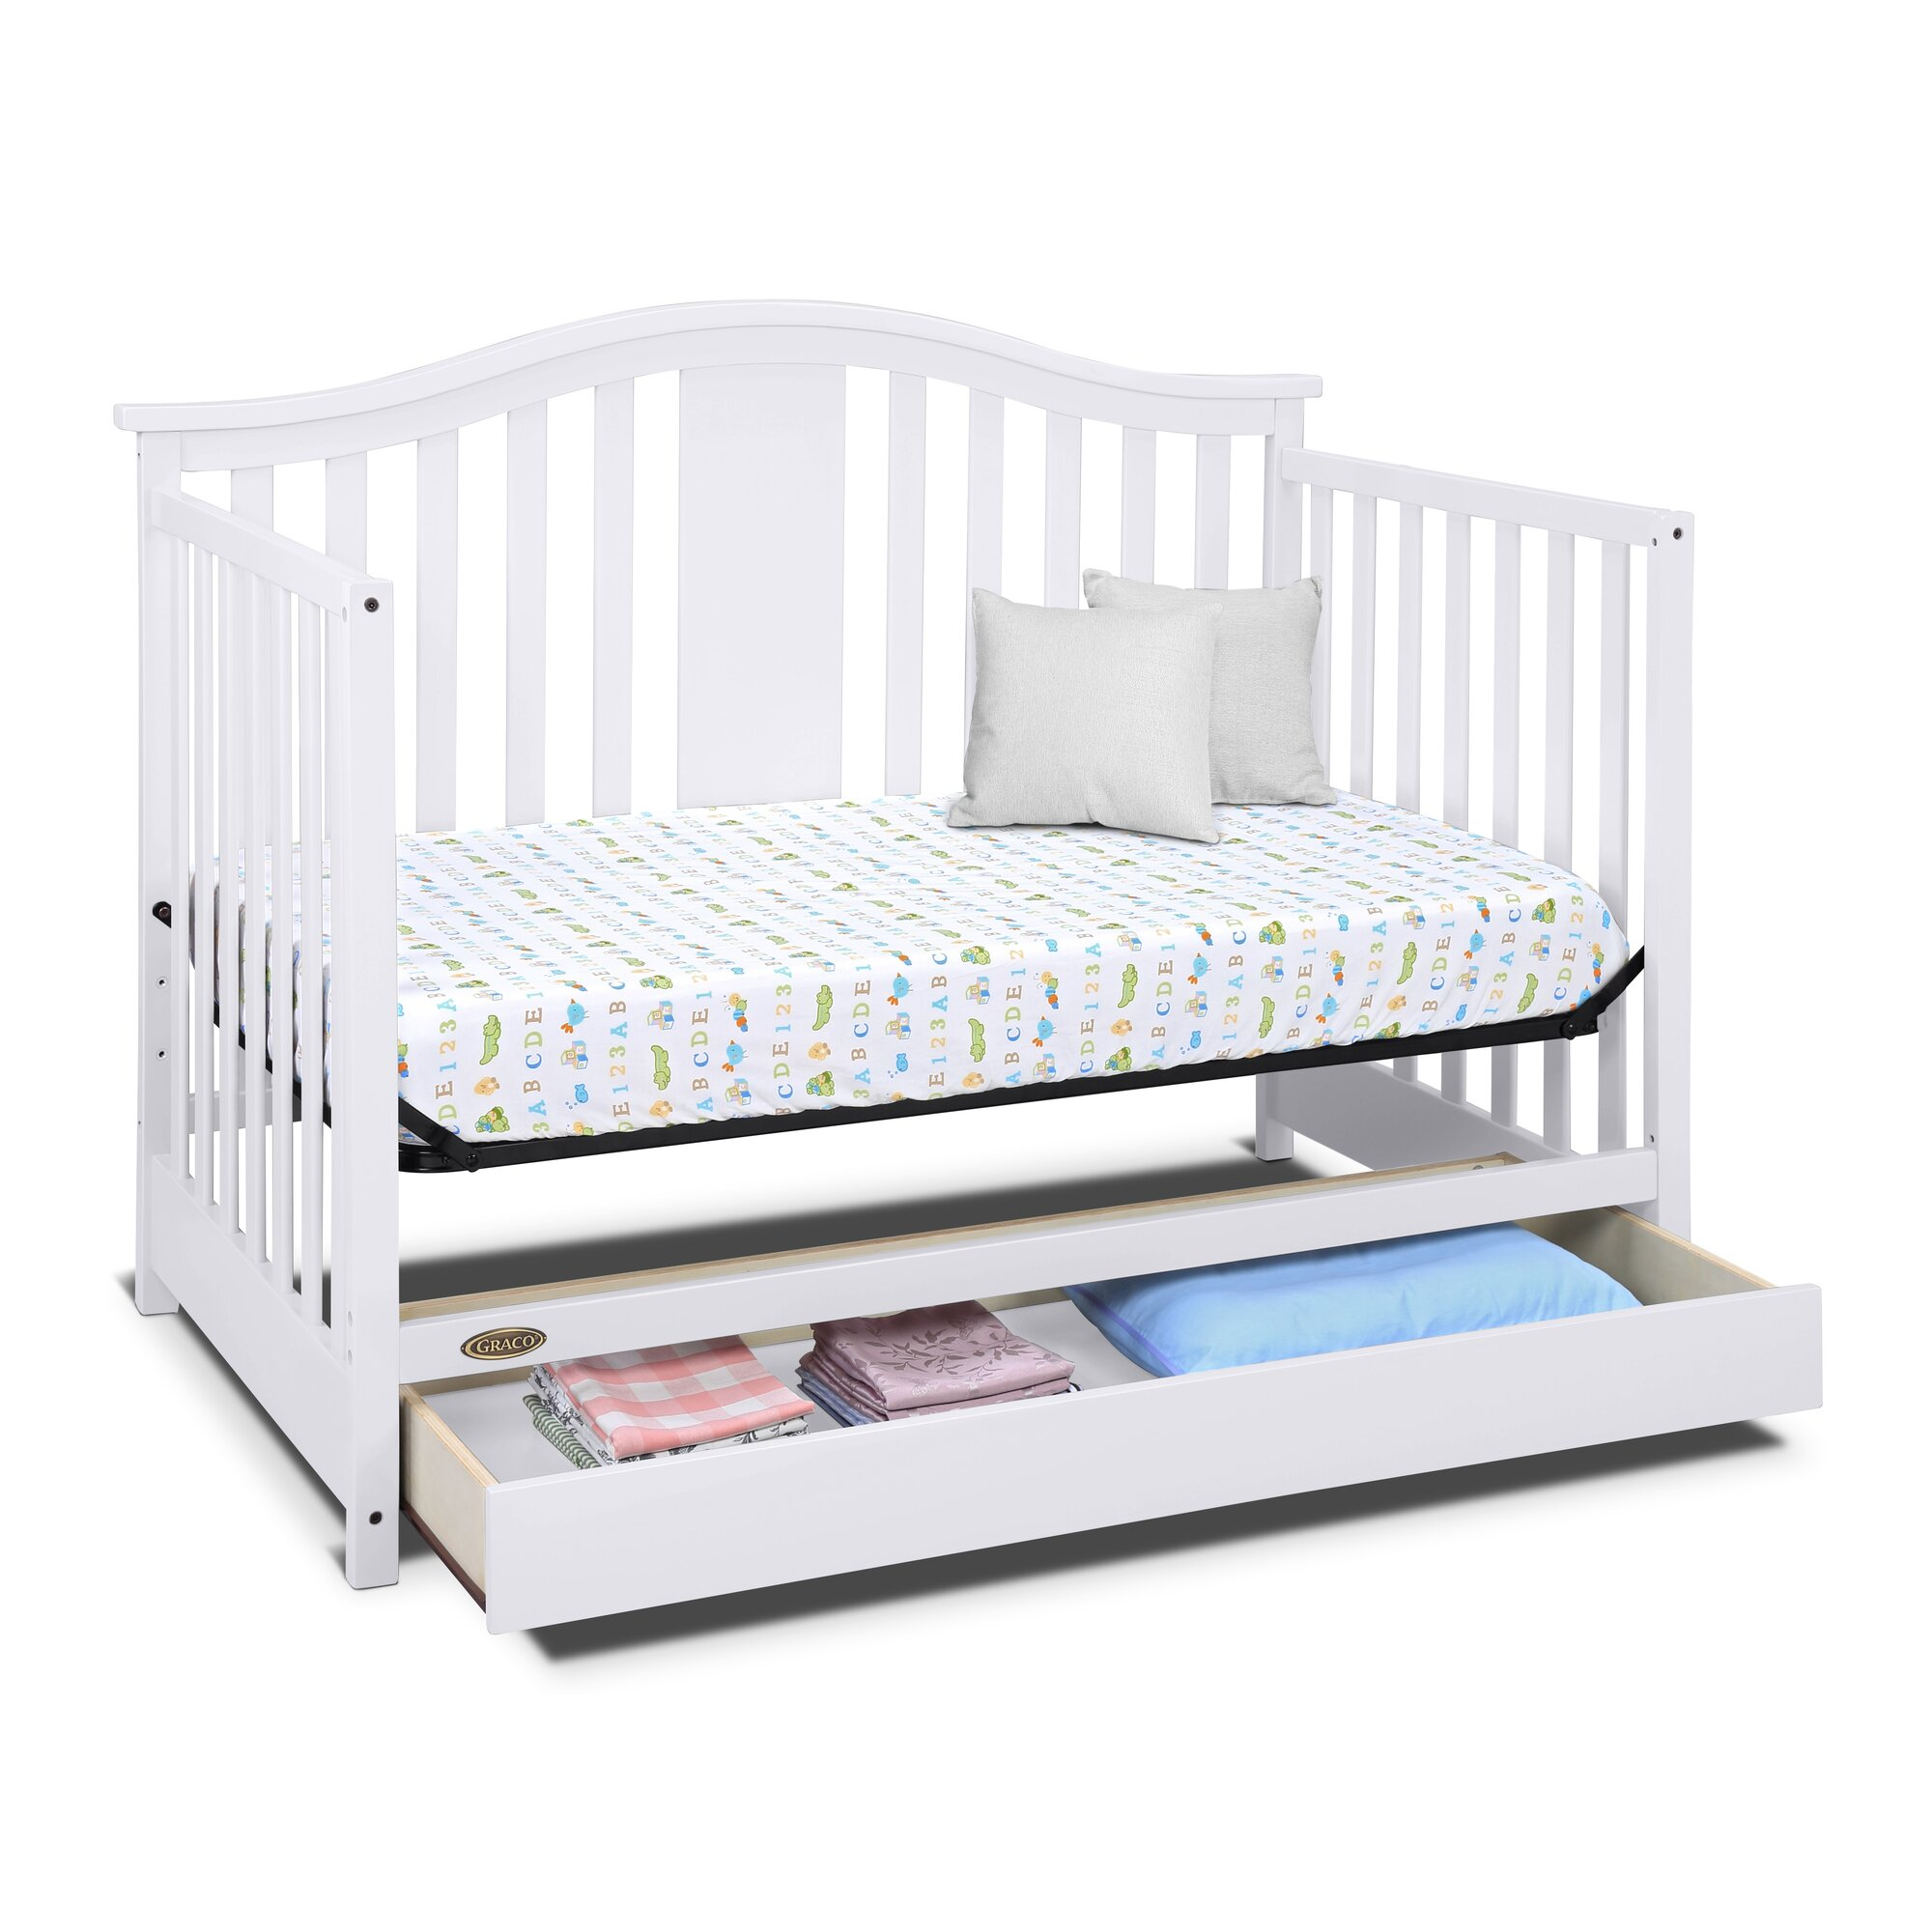 graco graco solano 4 in 1 convertible crib with drawer reviews wayfair. Black Bedroom Furniture Sets. Home Design Ideas